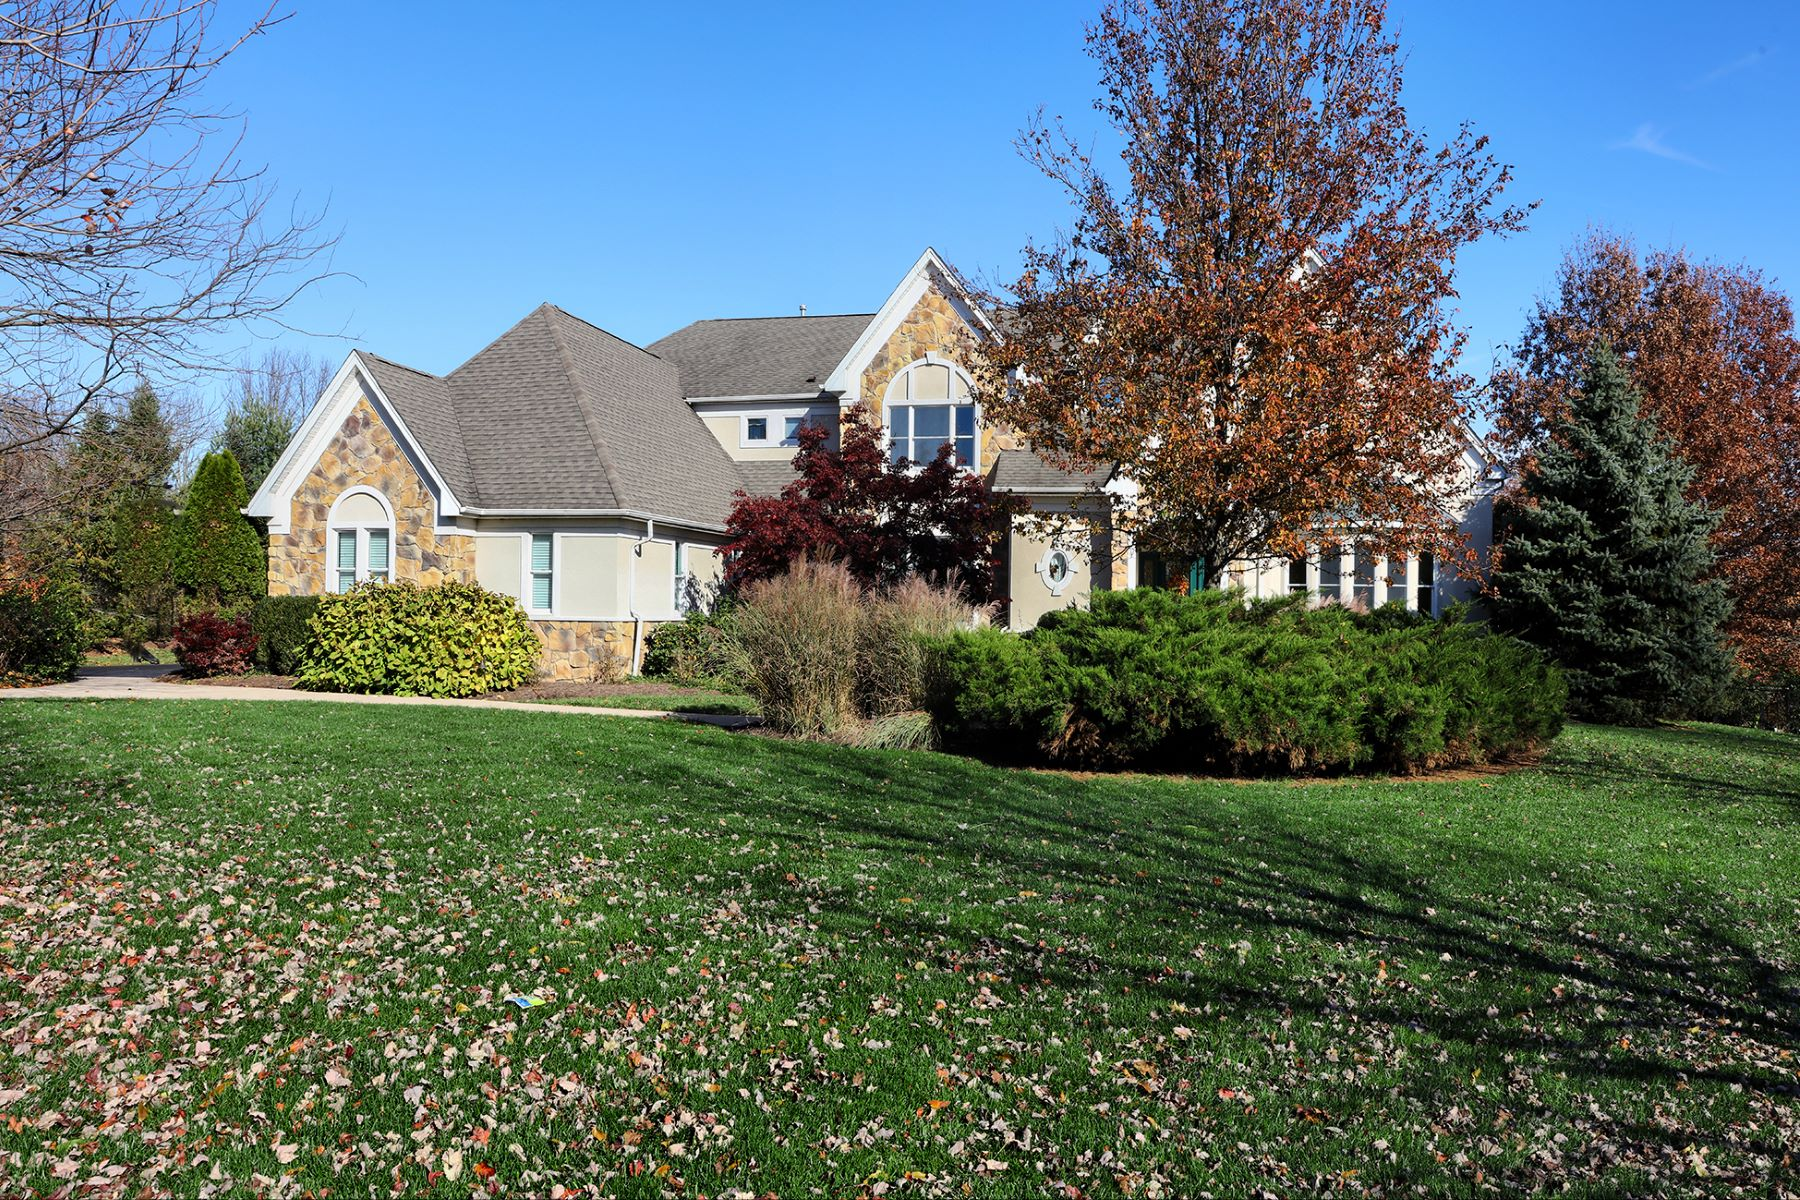 Additional photo for property listing at Distinctive Curb Appeal and Equally Impressive Interior 18 Moores Grove Court, Skillman, New Jersey 08558 United States